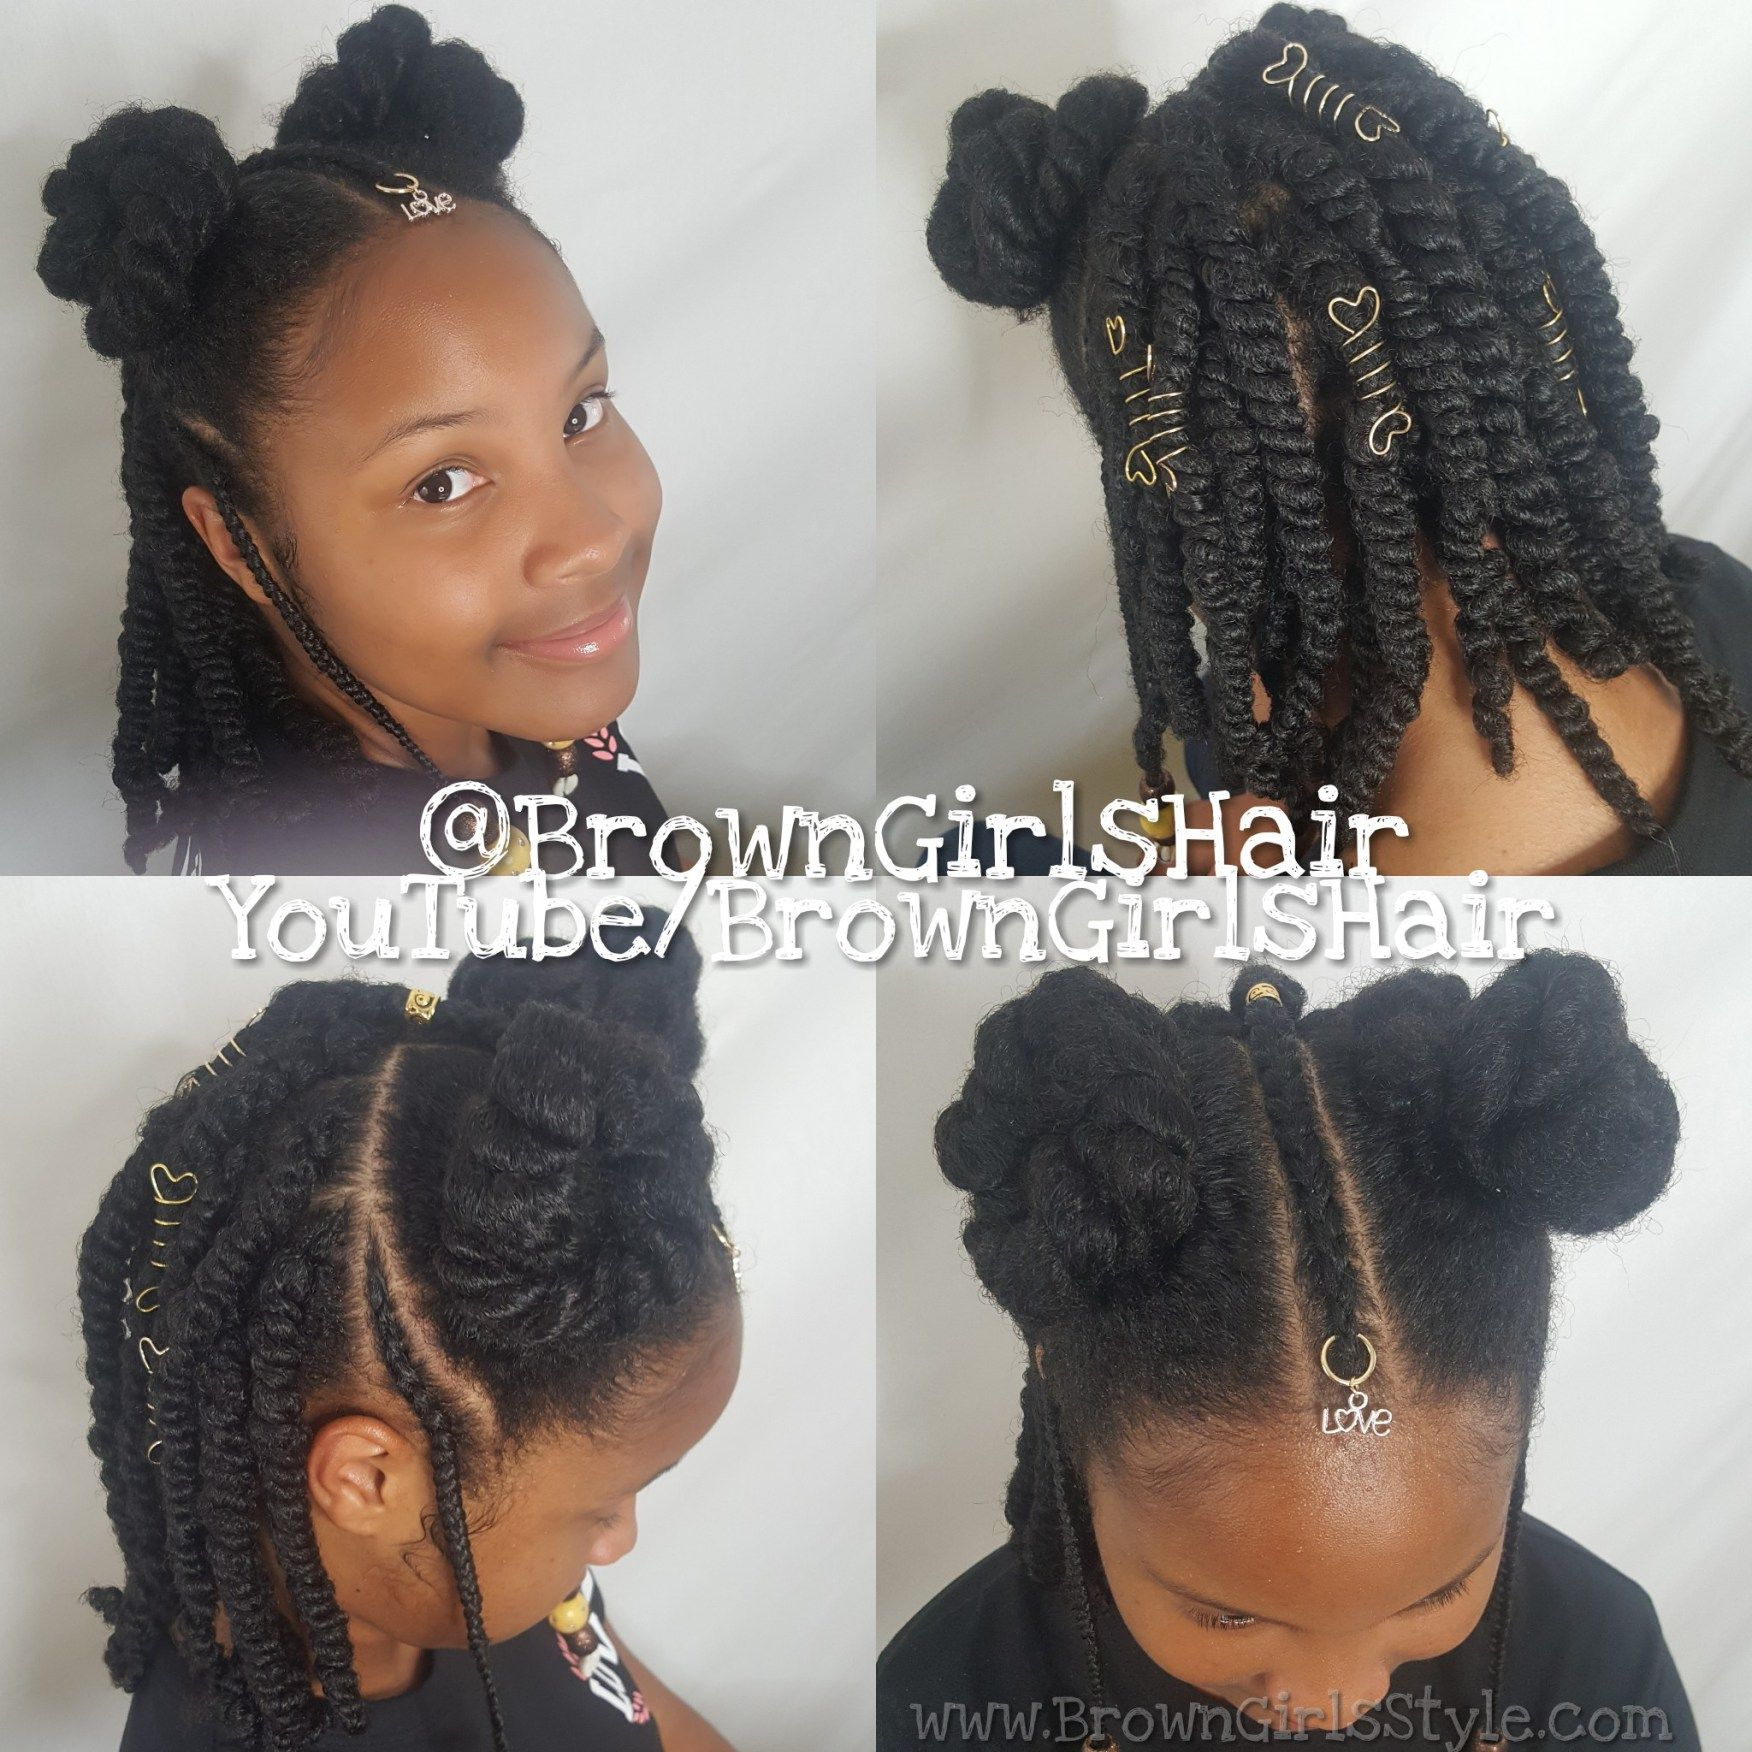 Brown Girls Hair Little Black Girls Natural Hair Hairstyles